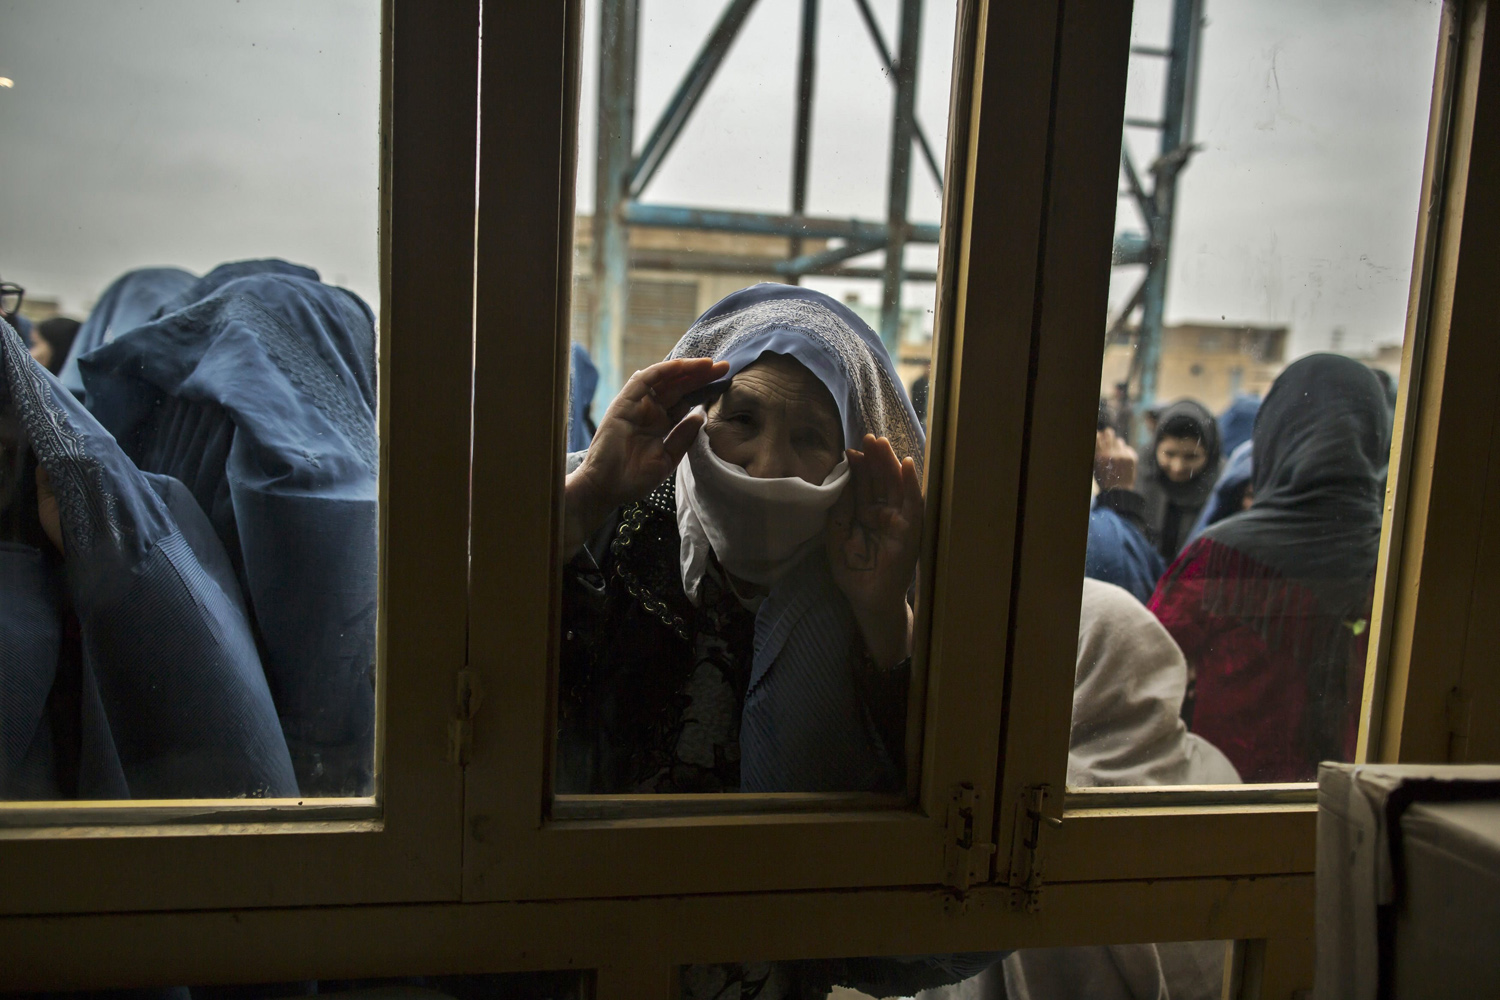 Apr. 5, 2014. An Afghan woman looks through a window as she waits for her turn to vote at a polling station in Mazar-i-sharif. Voting was peaceful during the first few hours of Afghanistan's presidential election on Saturday, with only isolated attacks on polling stations as the country embarked on the first democratic transfer of power since the fall of a Taliban regime in 2001.